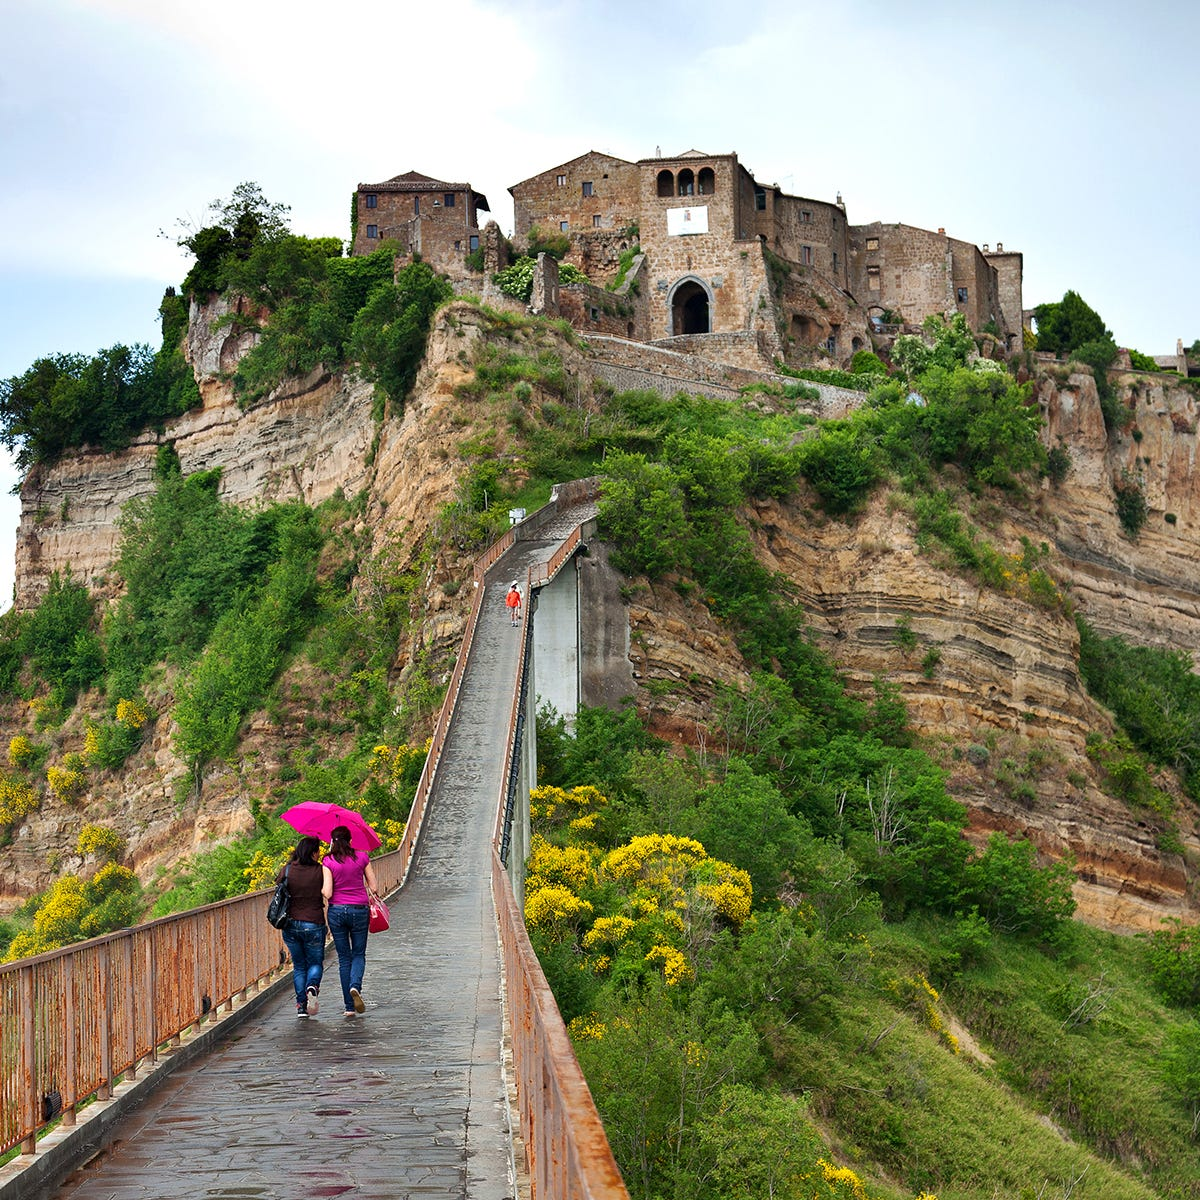 Rick Steves: Exploring Europe's hidden gems